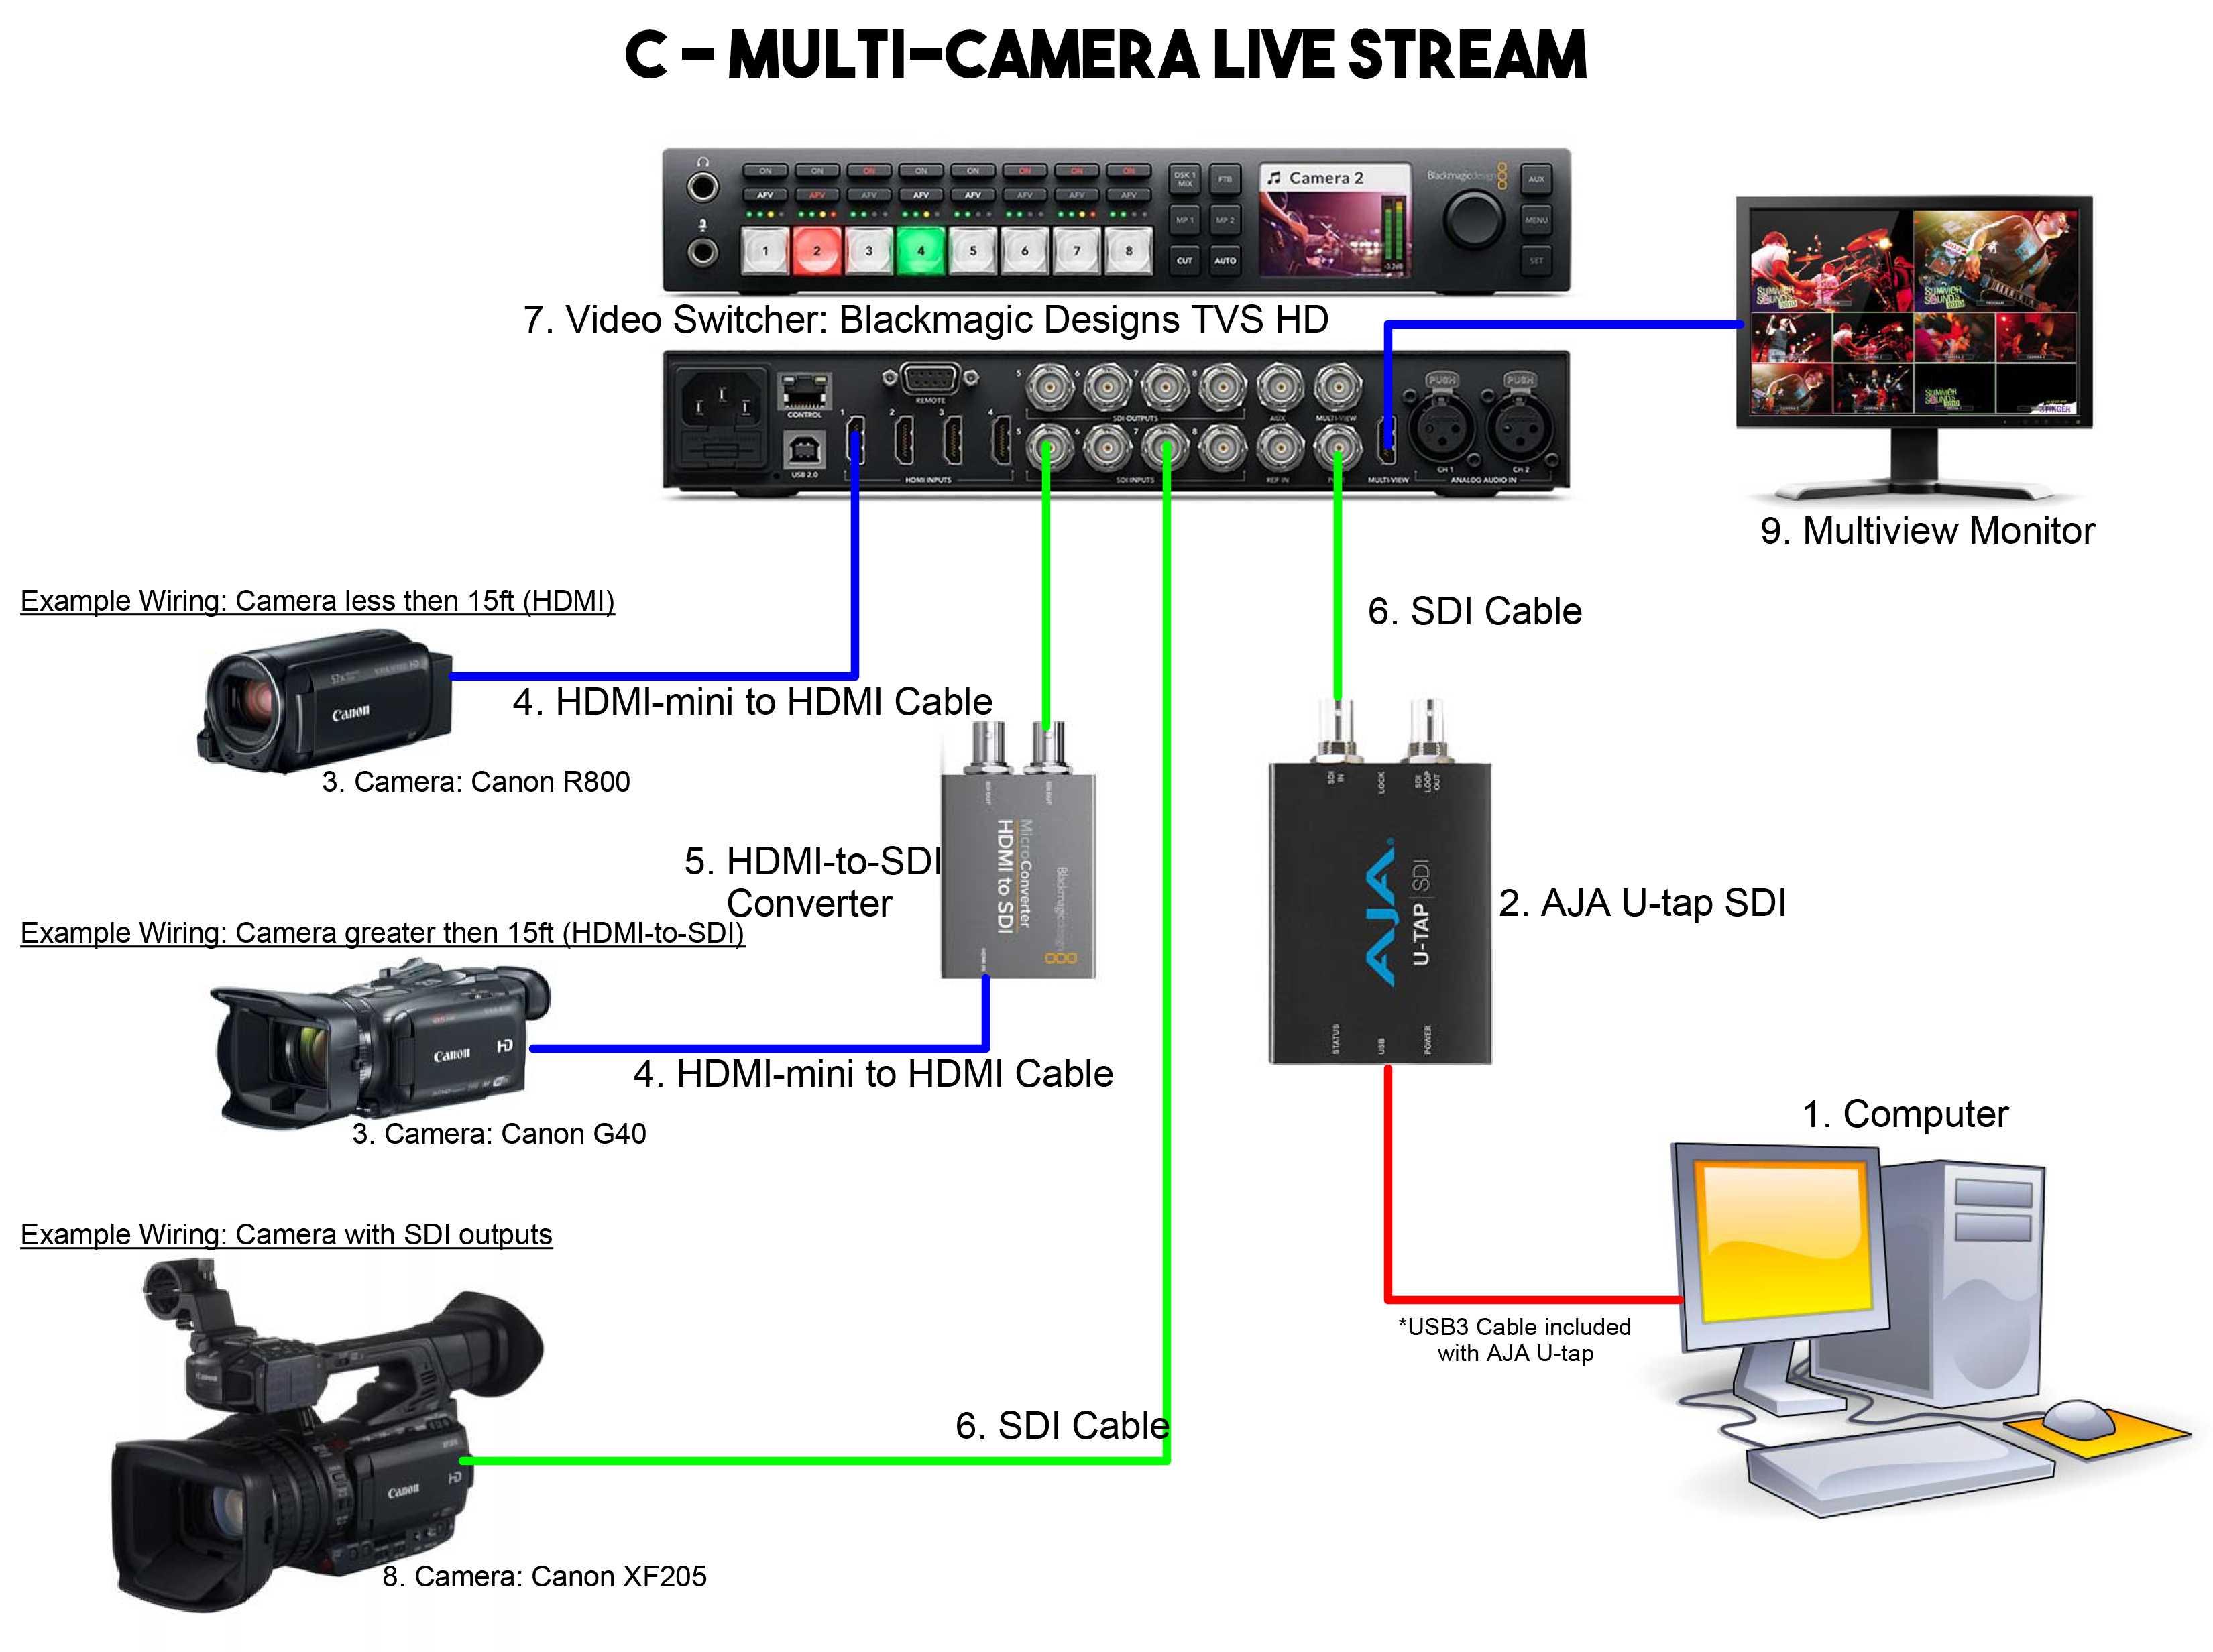 Ballastmedia ballast media page 3 note each of the 3 cameras is showing a different method of connecting a camera to your switcher 1 direct hdmi 15ft 2 hdmi converted to sdi for longer asfbconference2016 Choice Image